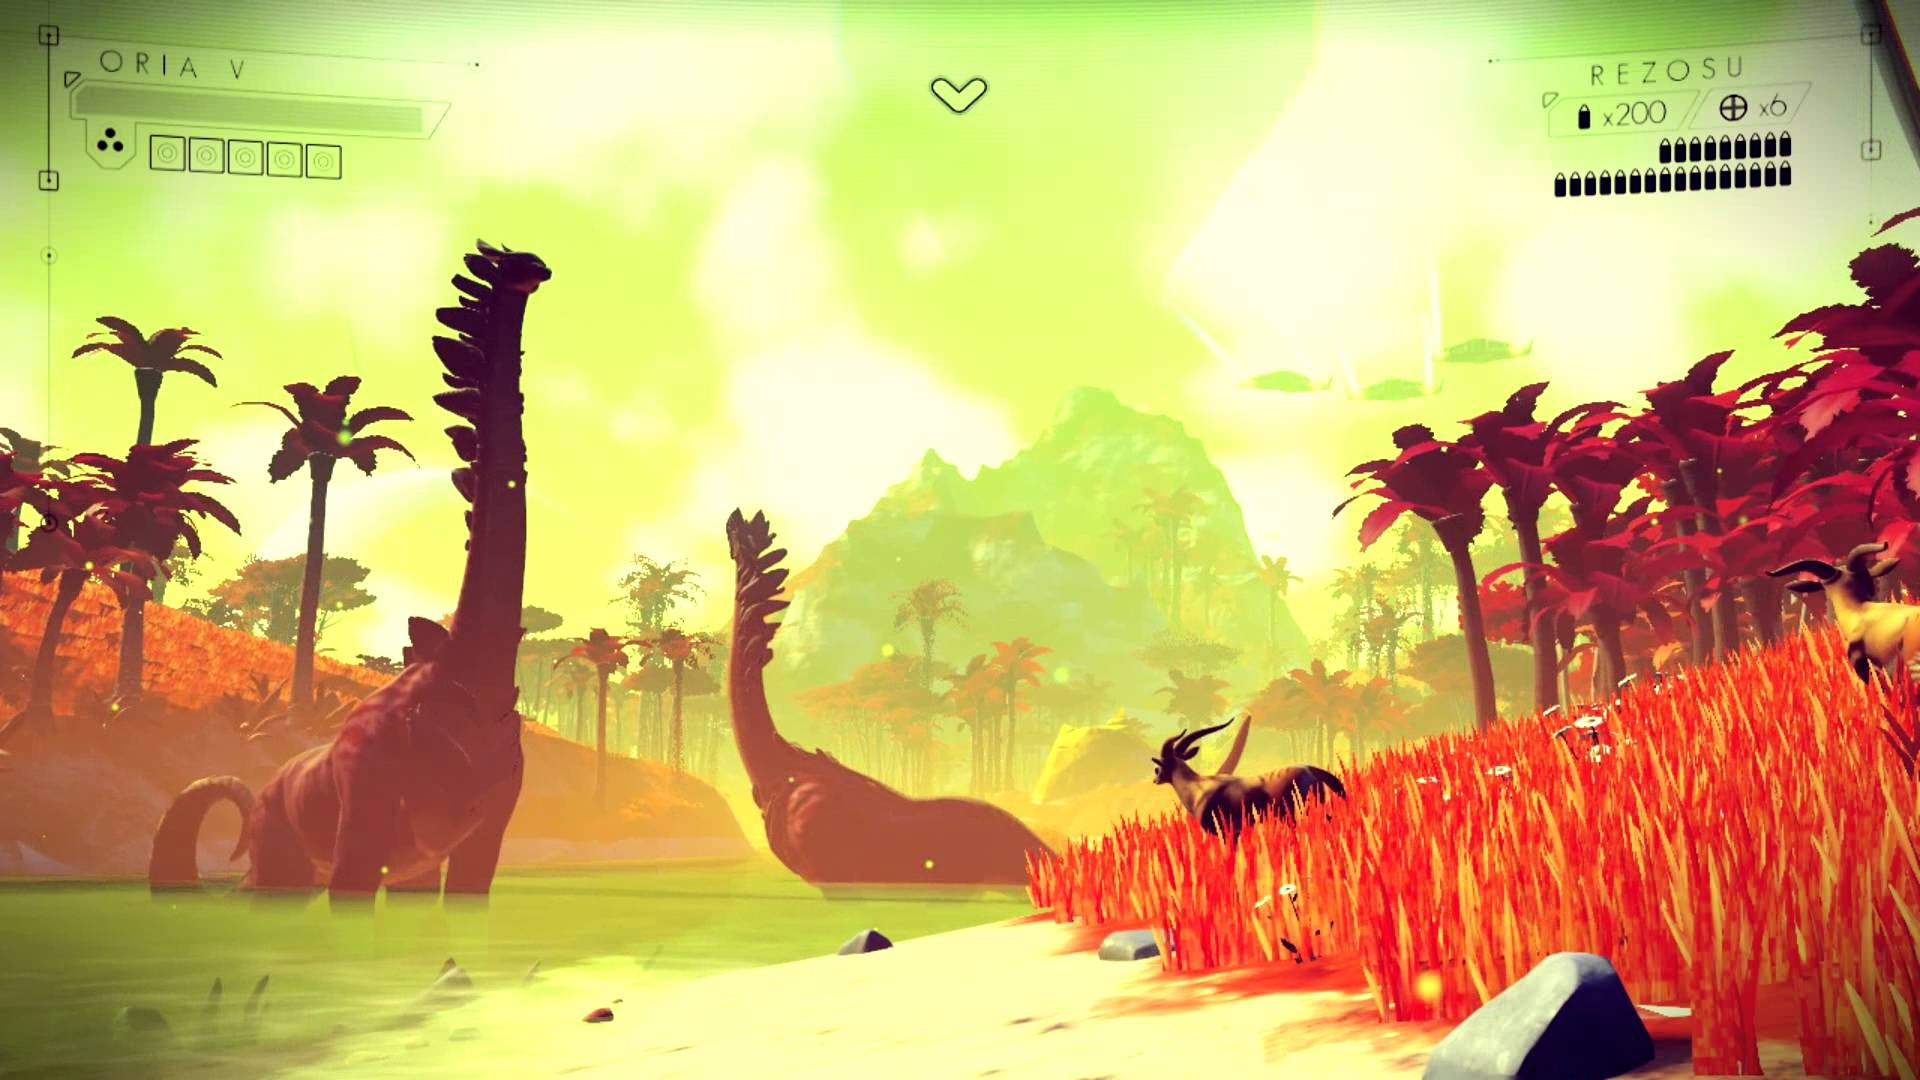 Steam Offering No Man's Sky Refunds To Players That Played The Game For More Than 2 Hours